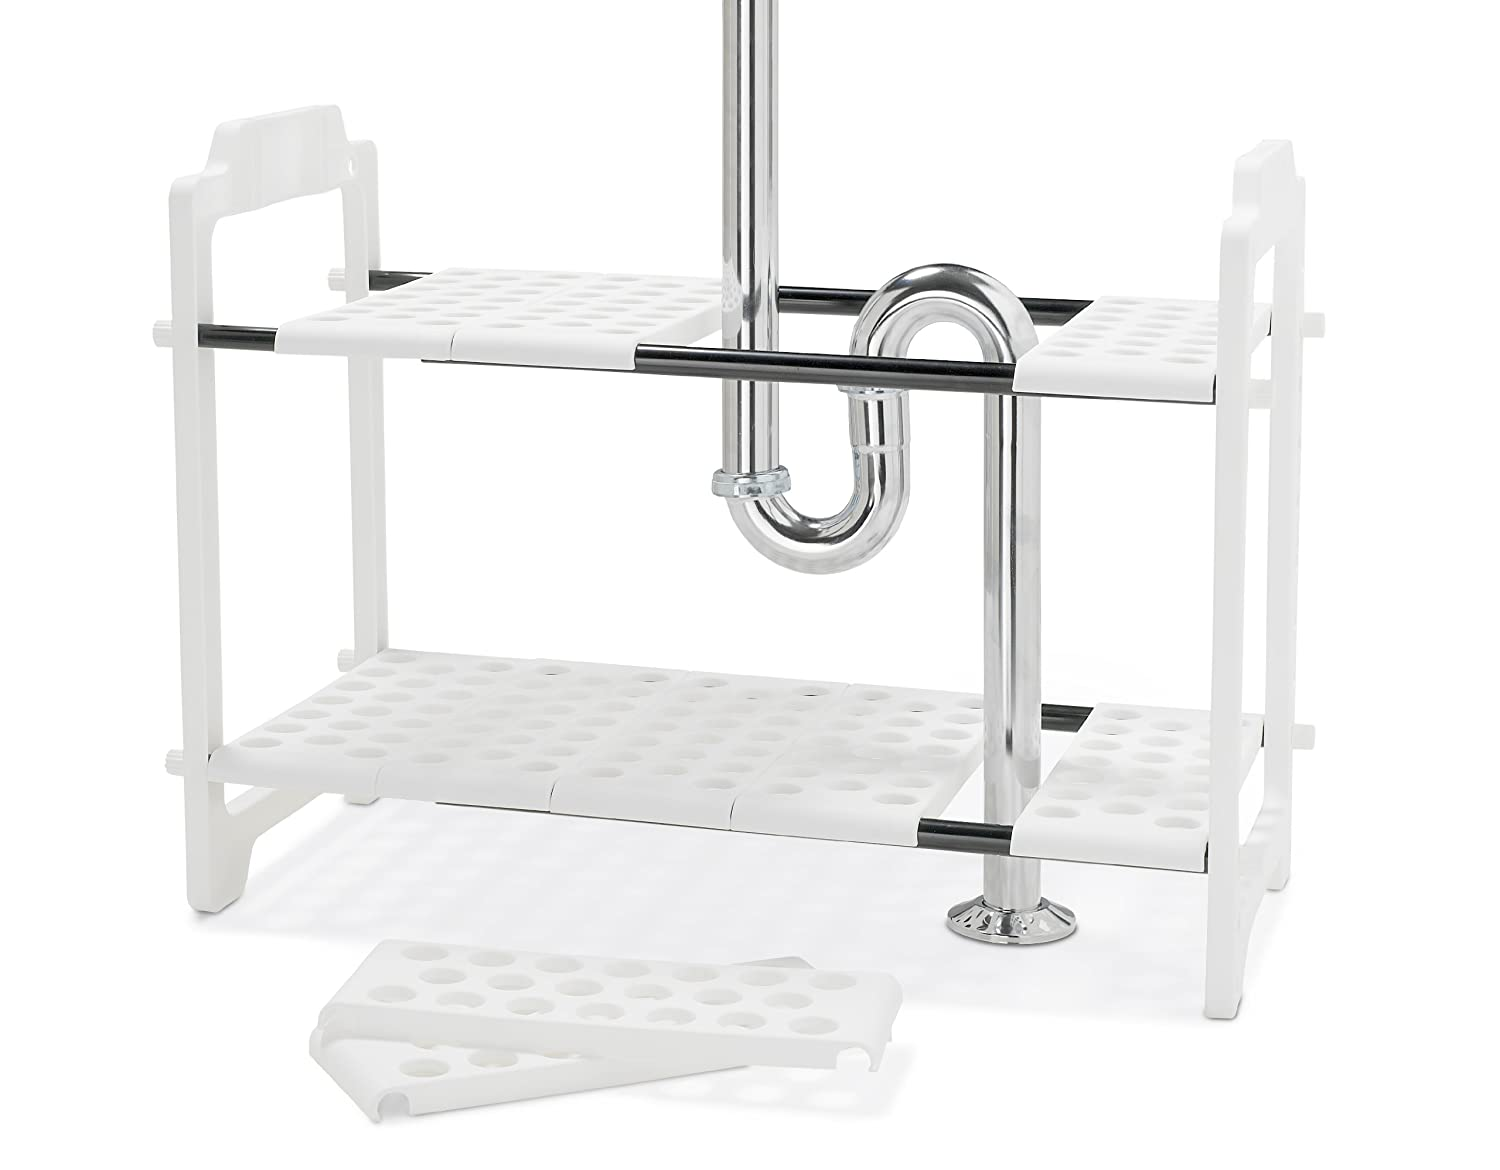 Amazon.com - madesmart Undersink Shelf Organizer - Undersink Shelf